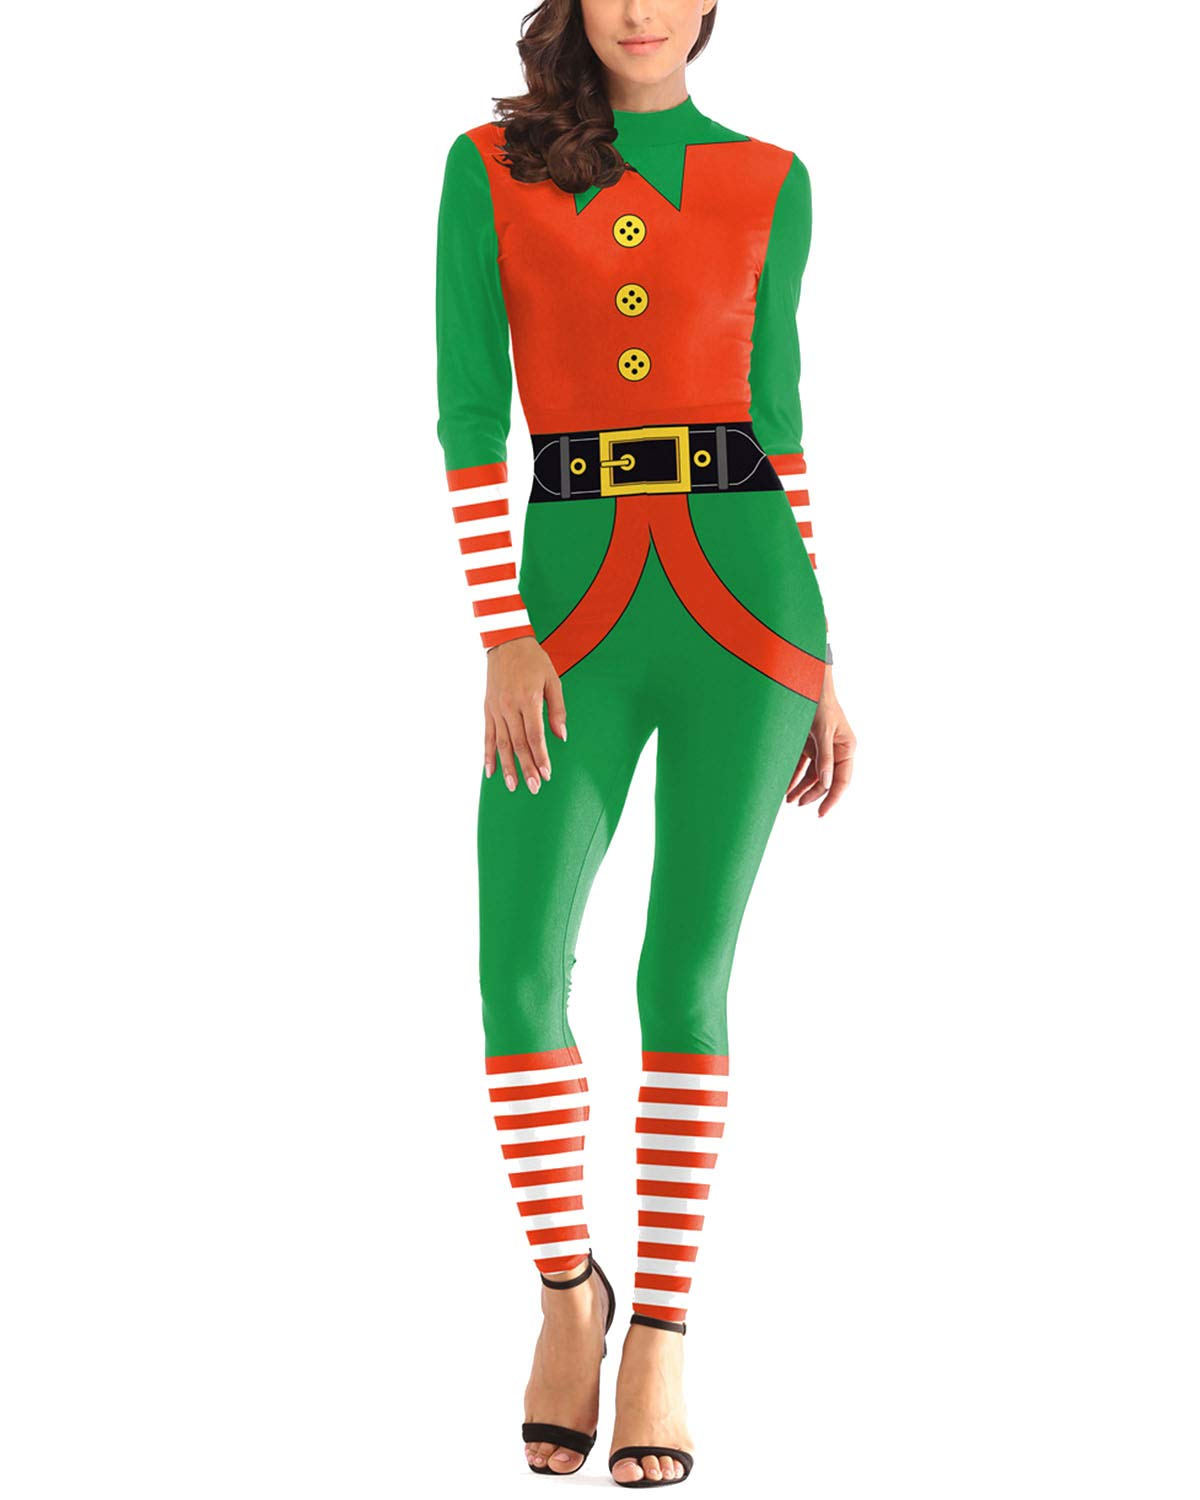 efcf5bd9f5 Women 3D Style Halloween Cosplay Costumes Jumpsuit Bodysuit product image